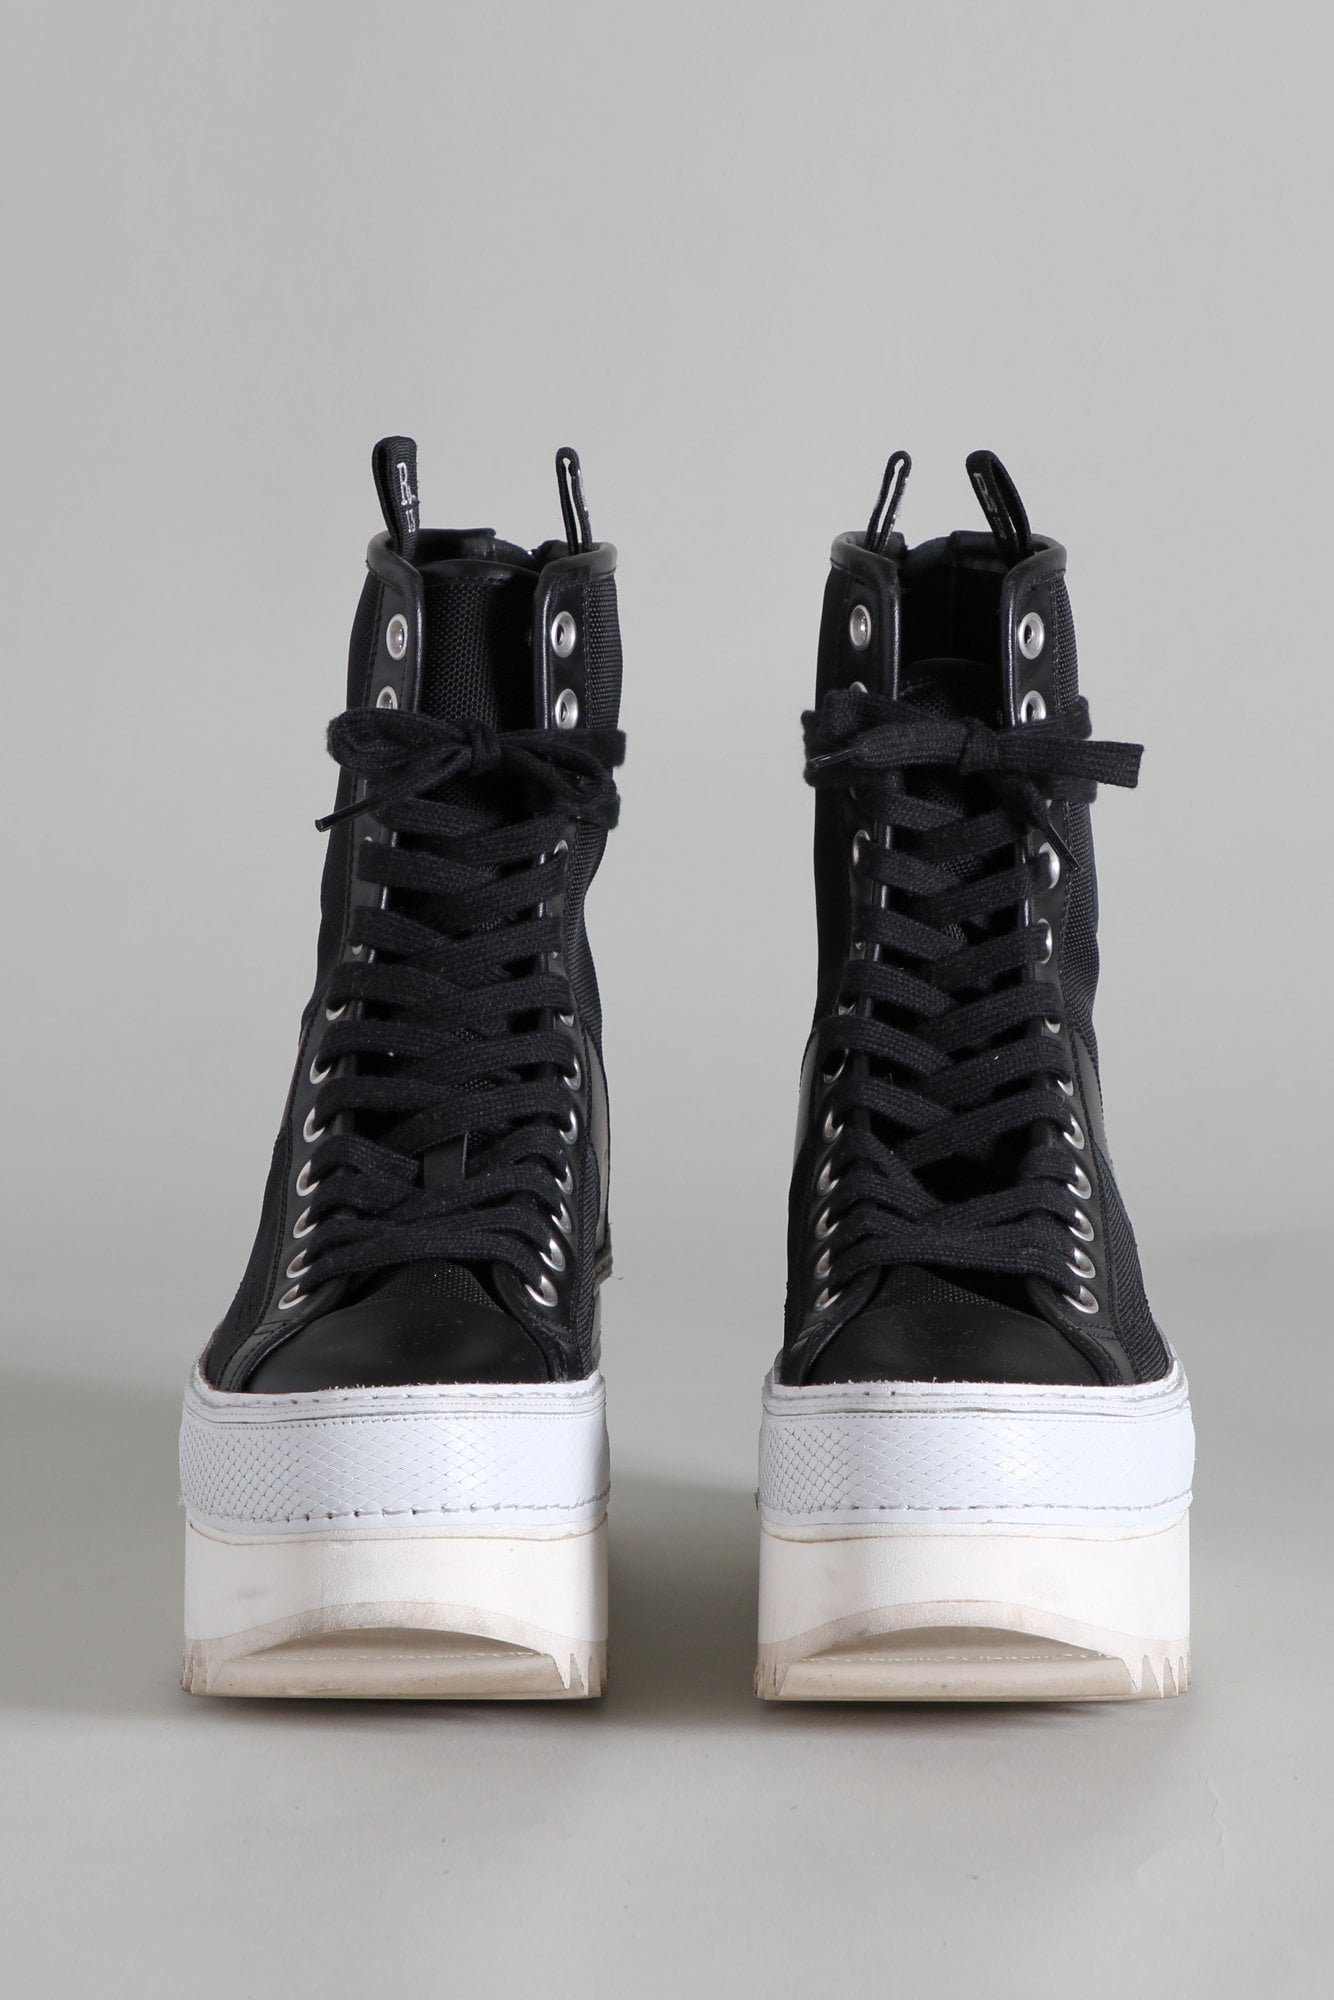 Tall Winter Platform High Top Sneakers - Black and Ecru